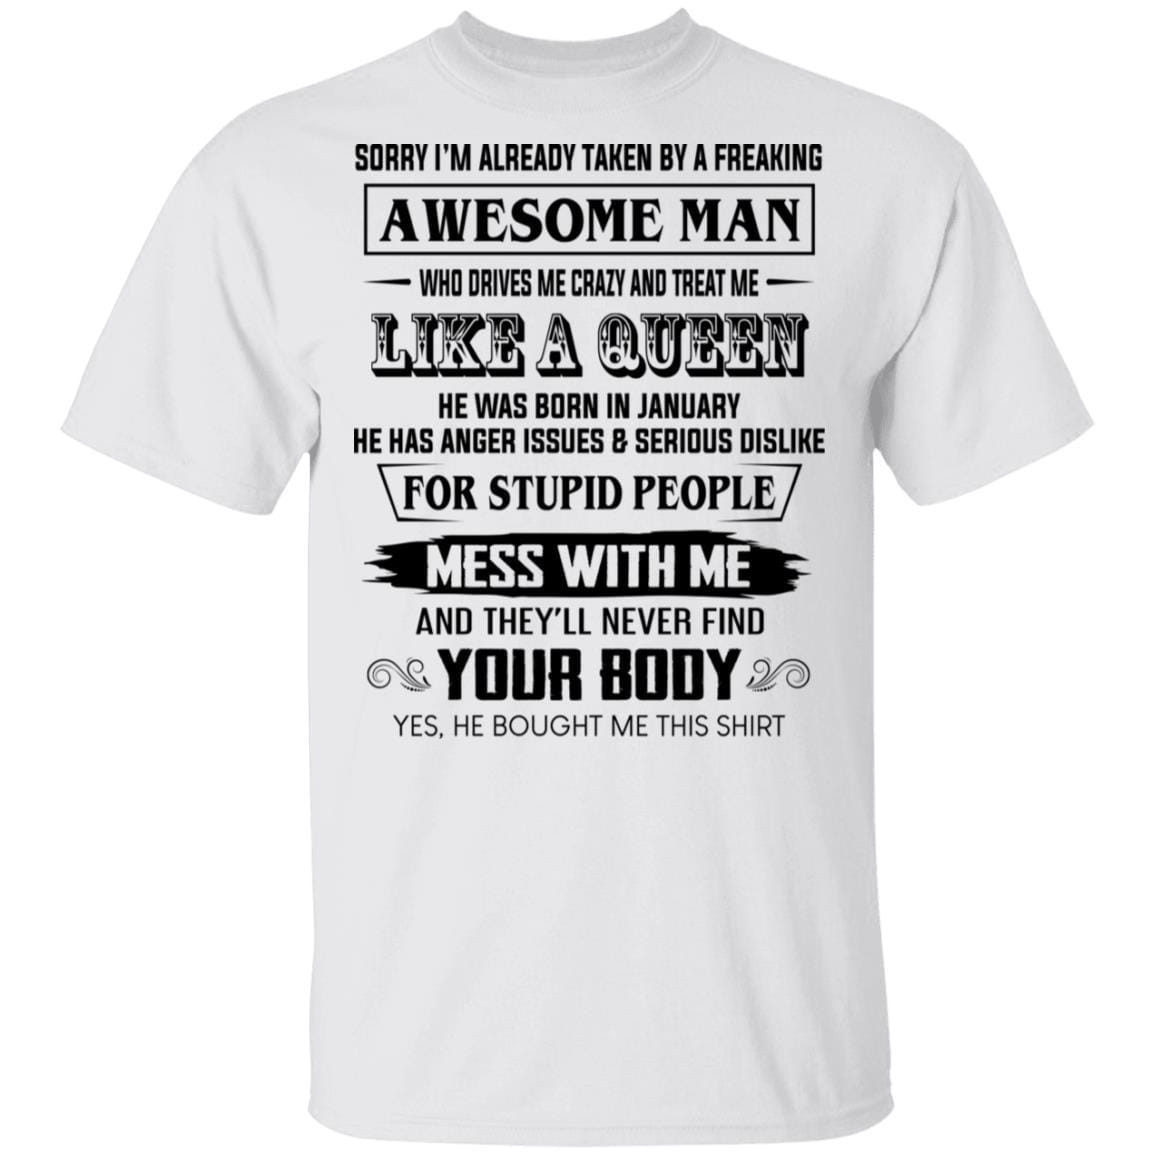 I'm Already Taken By A Freaking Awesome Man Who Drives Me Crazy And Born In January T-Shirts, Hoodies 1049-9974-86602254-48300 - Tee Ript